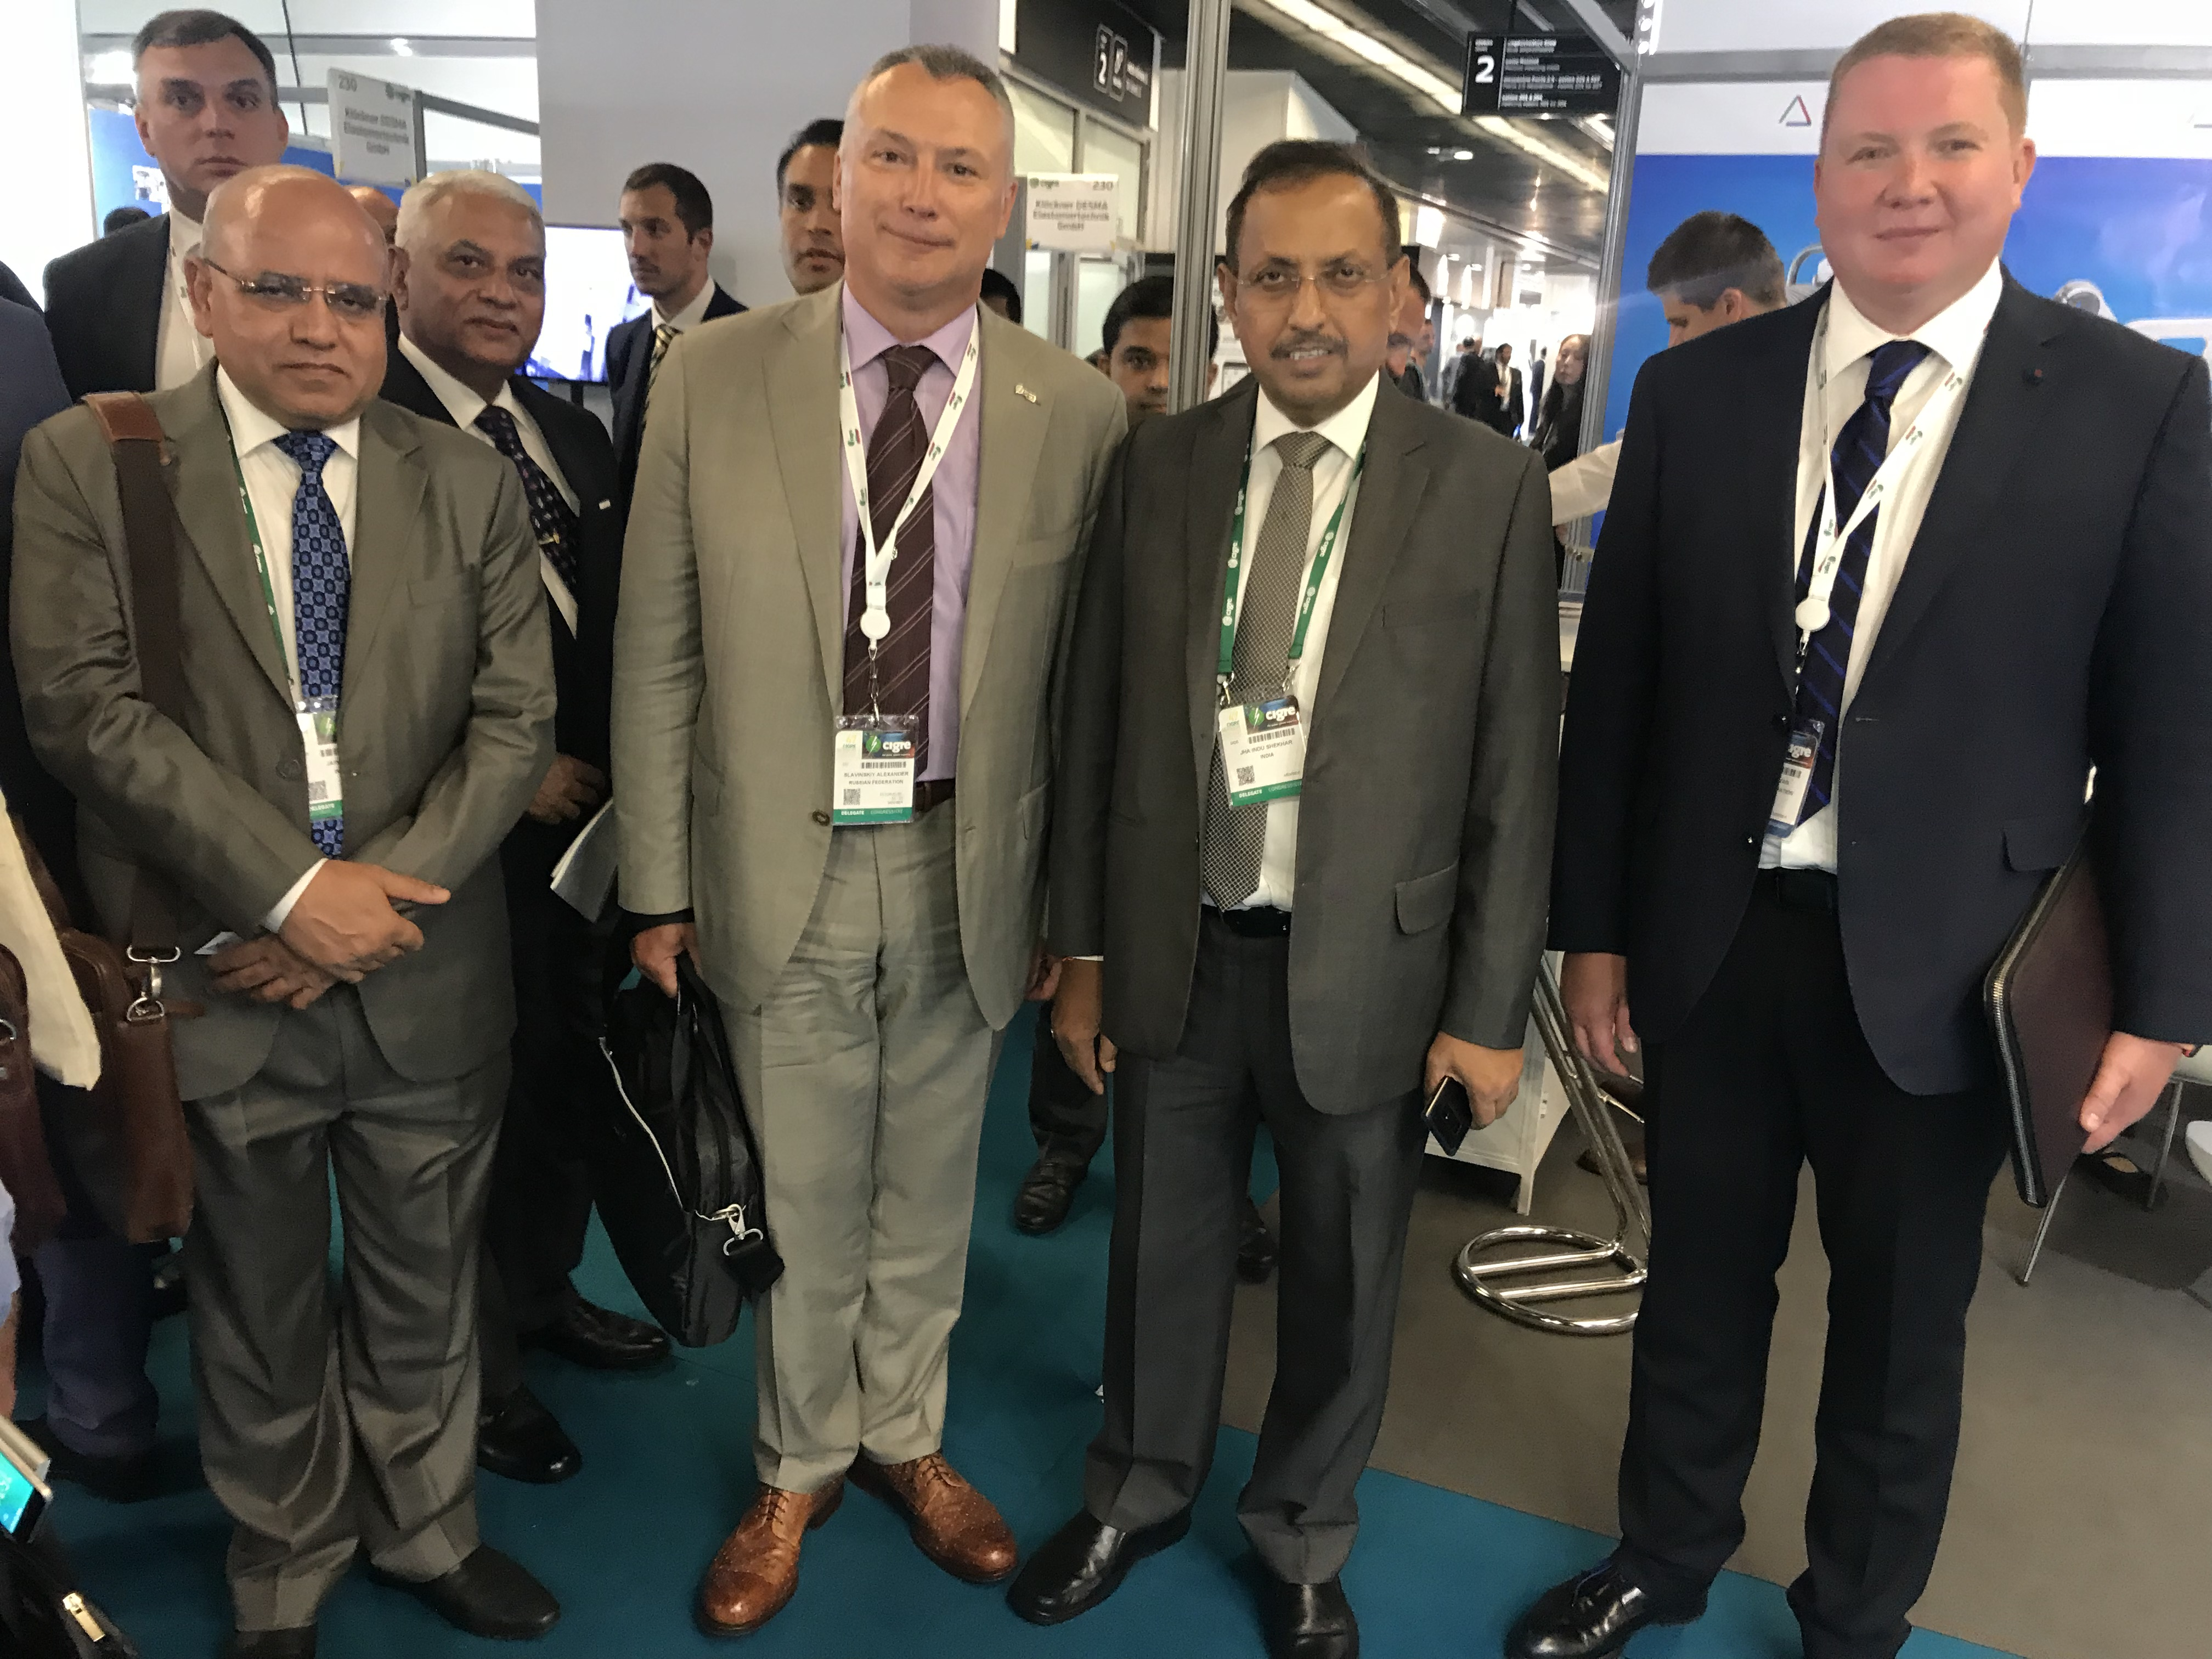 Participants of the meeting between he management of PowerGrid and Izolyator, in the foreground, L-R: Executive Director at PowerGrid Anil Jain, Alexander Slavinsky, Chairman and General Manager of PowerGrid I. S. Jha and Ivan Panfilov